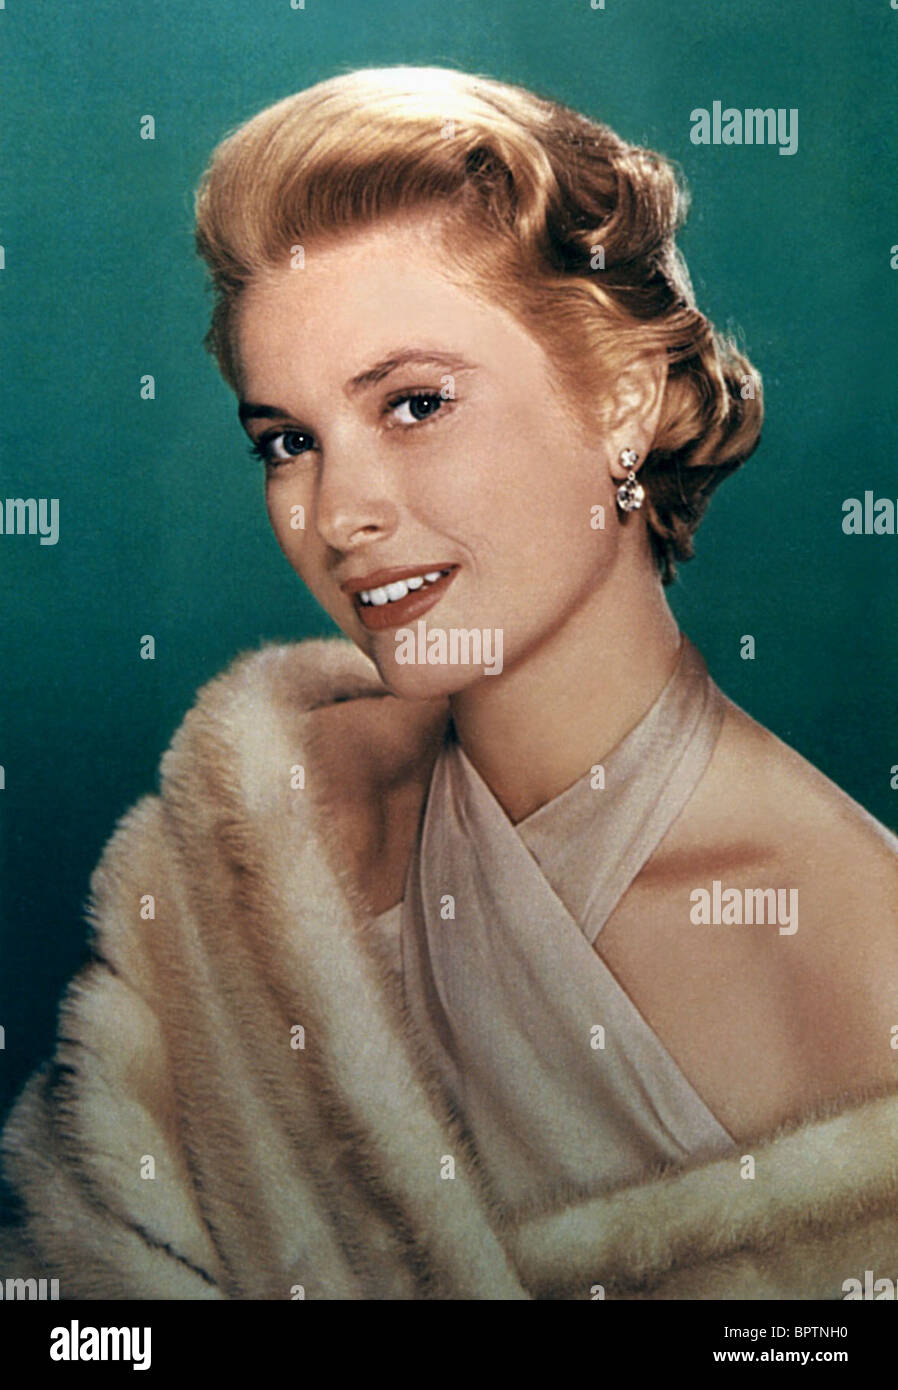 GRACE KELLY ACTRESS (1954) - Stock Image